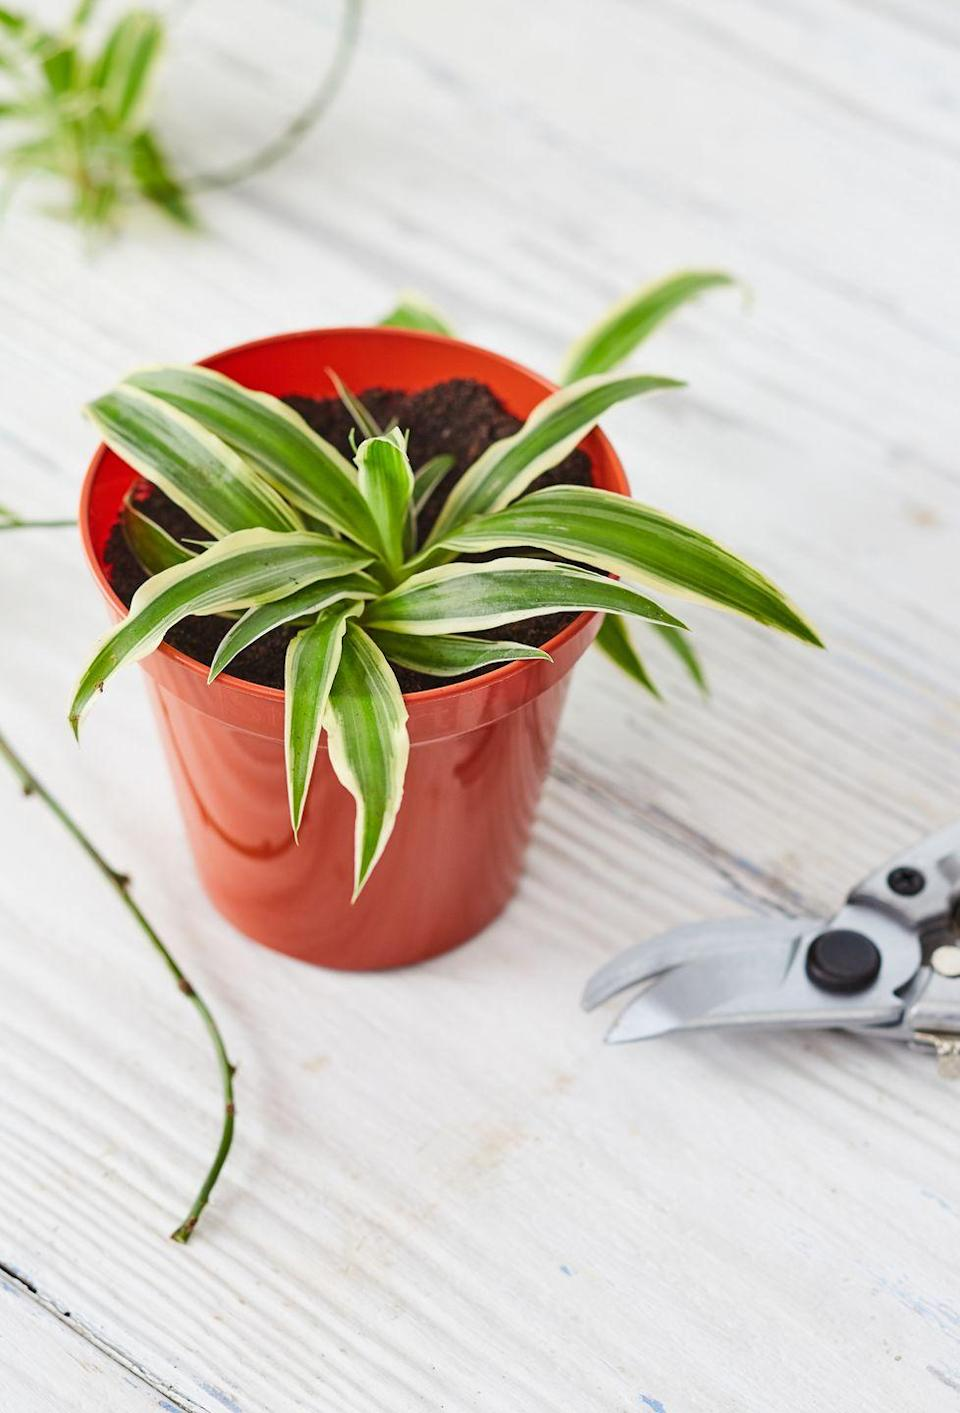 """<p><a class=""""link rapid-noclick-resp"""" href=""""https://www.amazon.com/Ocean-Spider-Plant-Easy-Cleans/dp/B00482TD04/?tag=syn-yahoo-20&ascsubtag=%5Bartid%7C10057.g.3716%5Bsrc%7Cyahoo-us"""" rel=""""nofollow noopener"""" target=""""_blank"""" data-ylk=""""slk:BUY NOW"""">BUY NOW</a> <strong><em>$12, amazon.com</em></strong></p><p>Since these plants prefer to dry out <a href=""""http://www.gardeningknowhow.com/houseplants/spider-plant/spider-plant-care-gardening-tips-for-spider-plants.htm"""" rel=""""nofollow noopener"""" target=""""_blank"""" data-ylk=""""slk:between waterings"""" class=""""link rapid-noclick-resp"""">between waterings</a>, you can usually go a few days between sessions. They also like indirect light, so they'll flourish even if you have a dark, windowless office (the actual worst)</p>"""